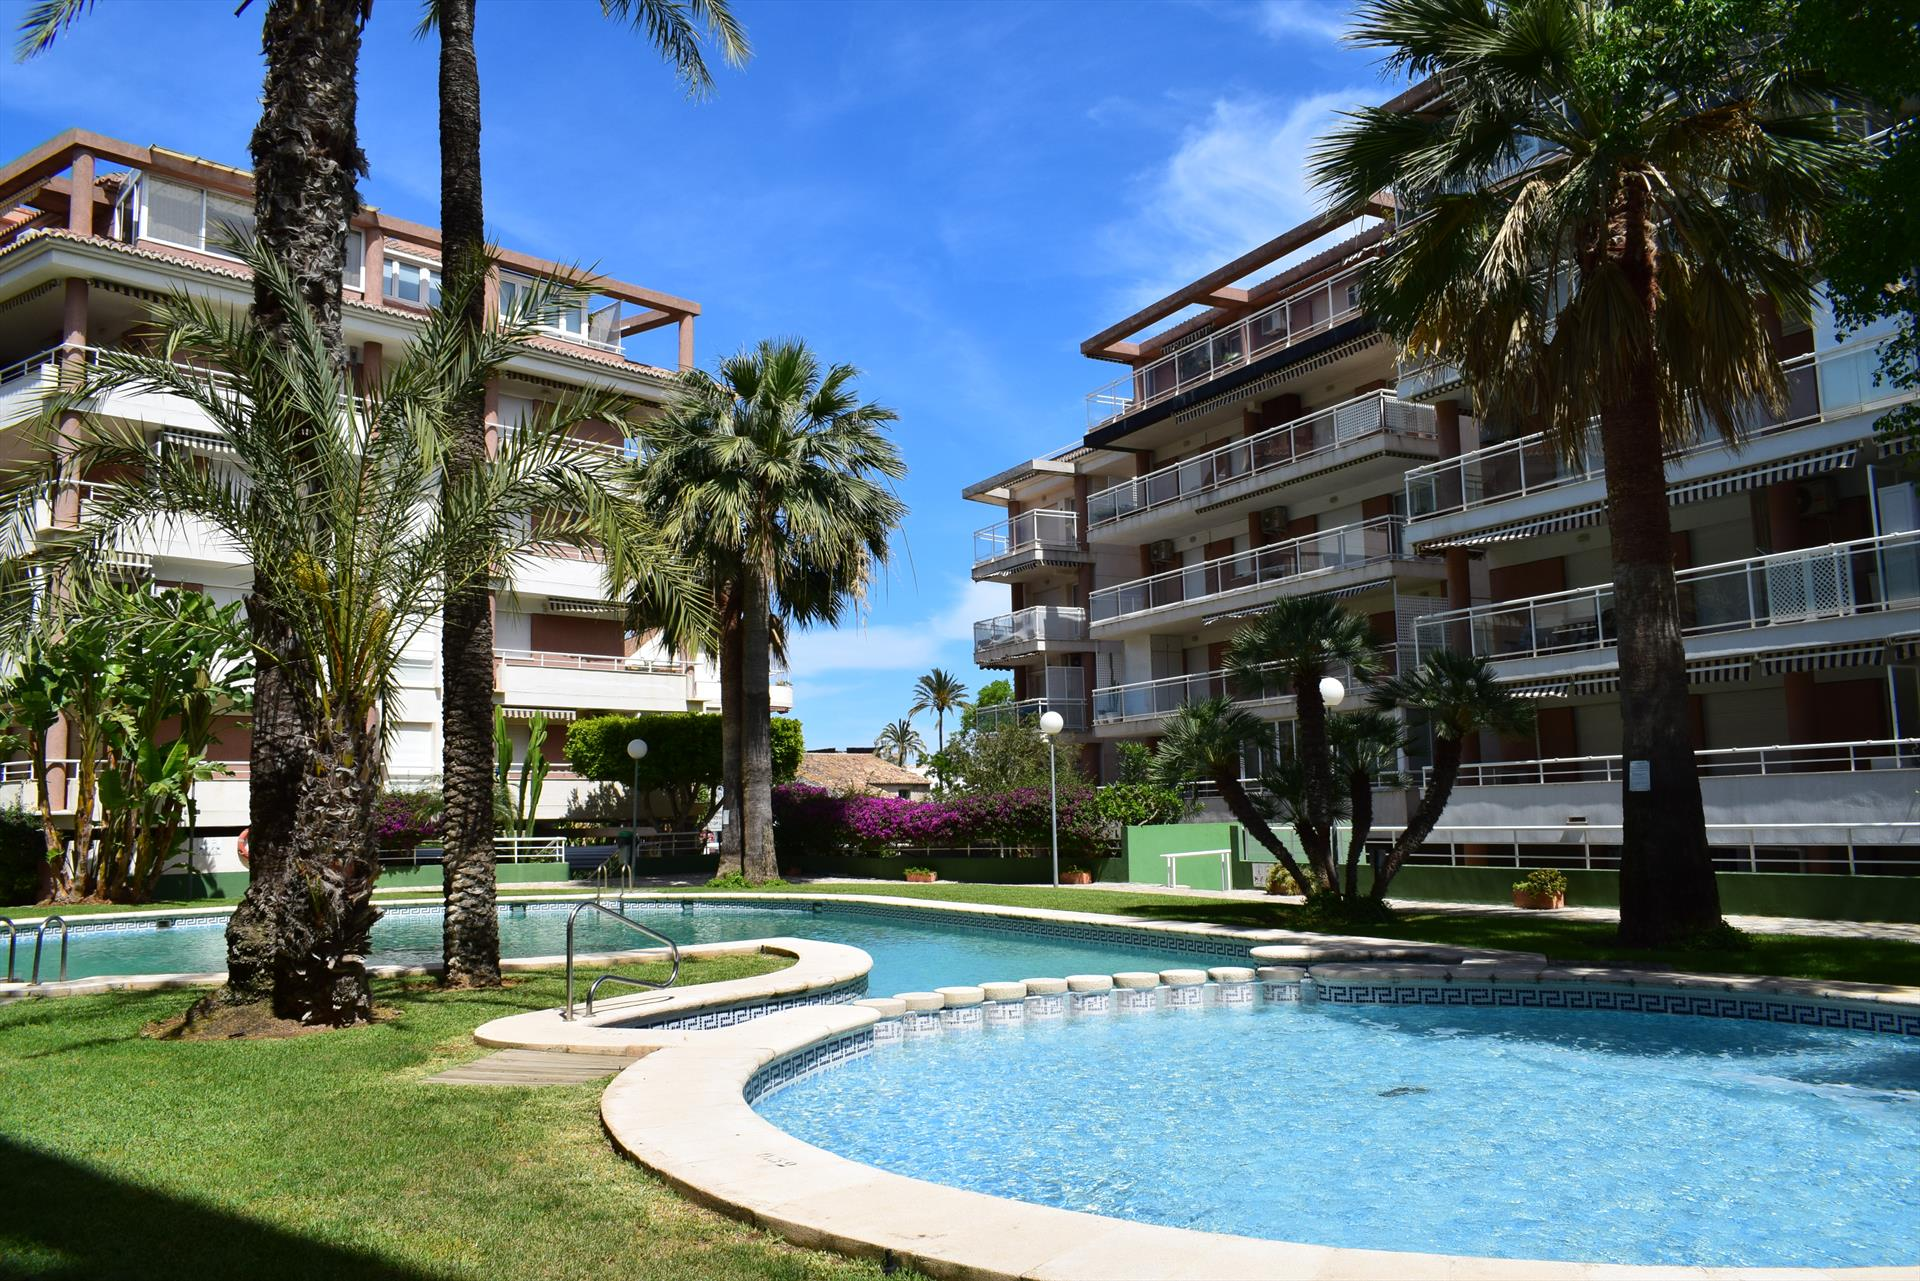 AP1112 Dianium Ausias March, Classic and cheerful apartment in Denia, on the Costa Blanca, Spain  with communal pool for 4 persons.....